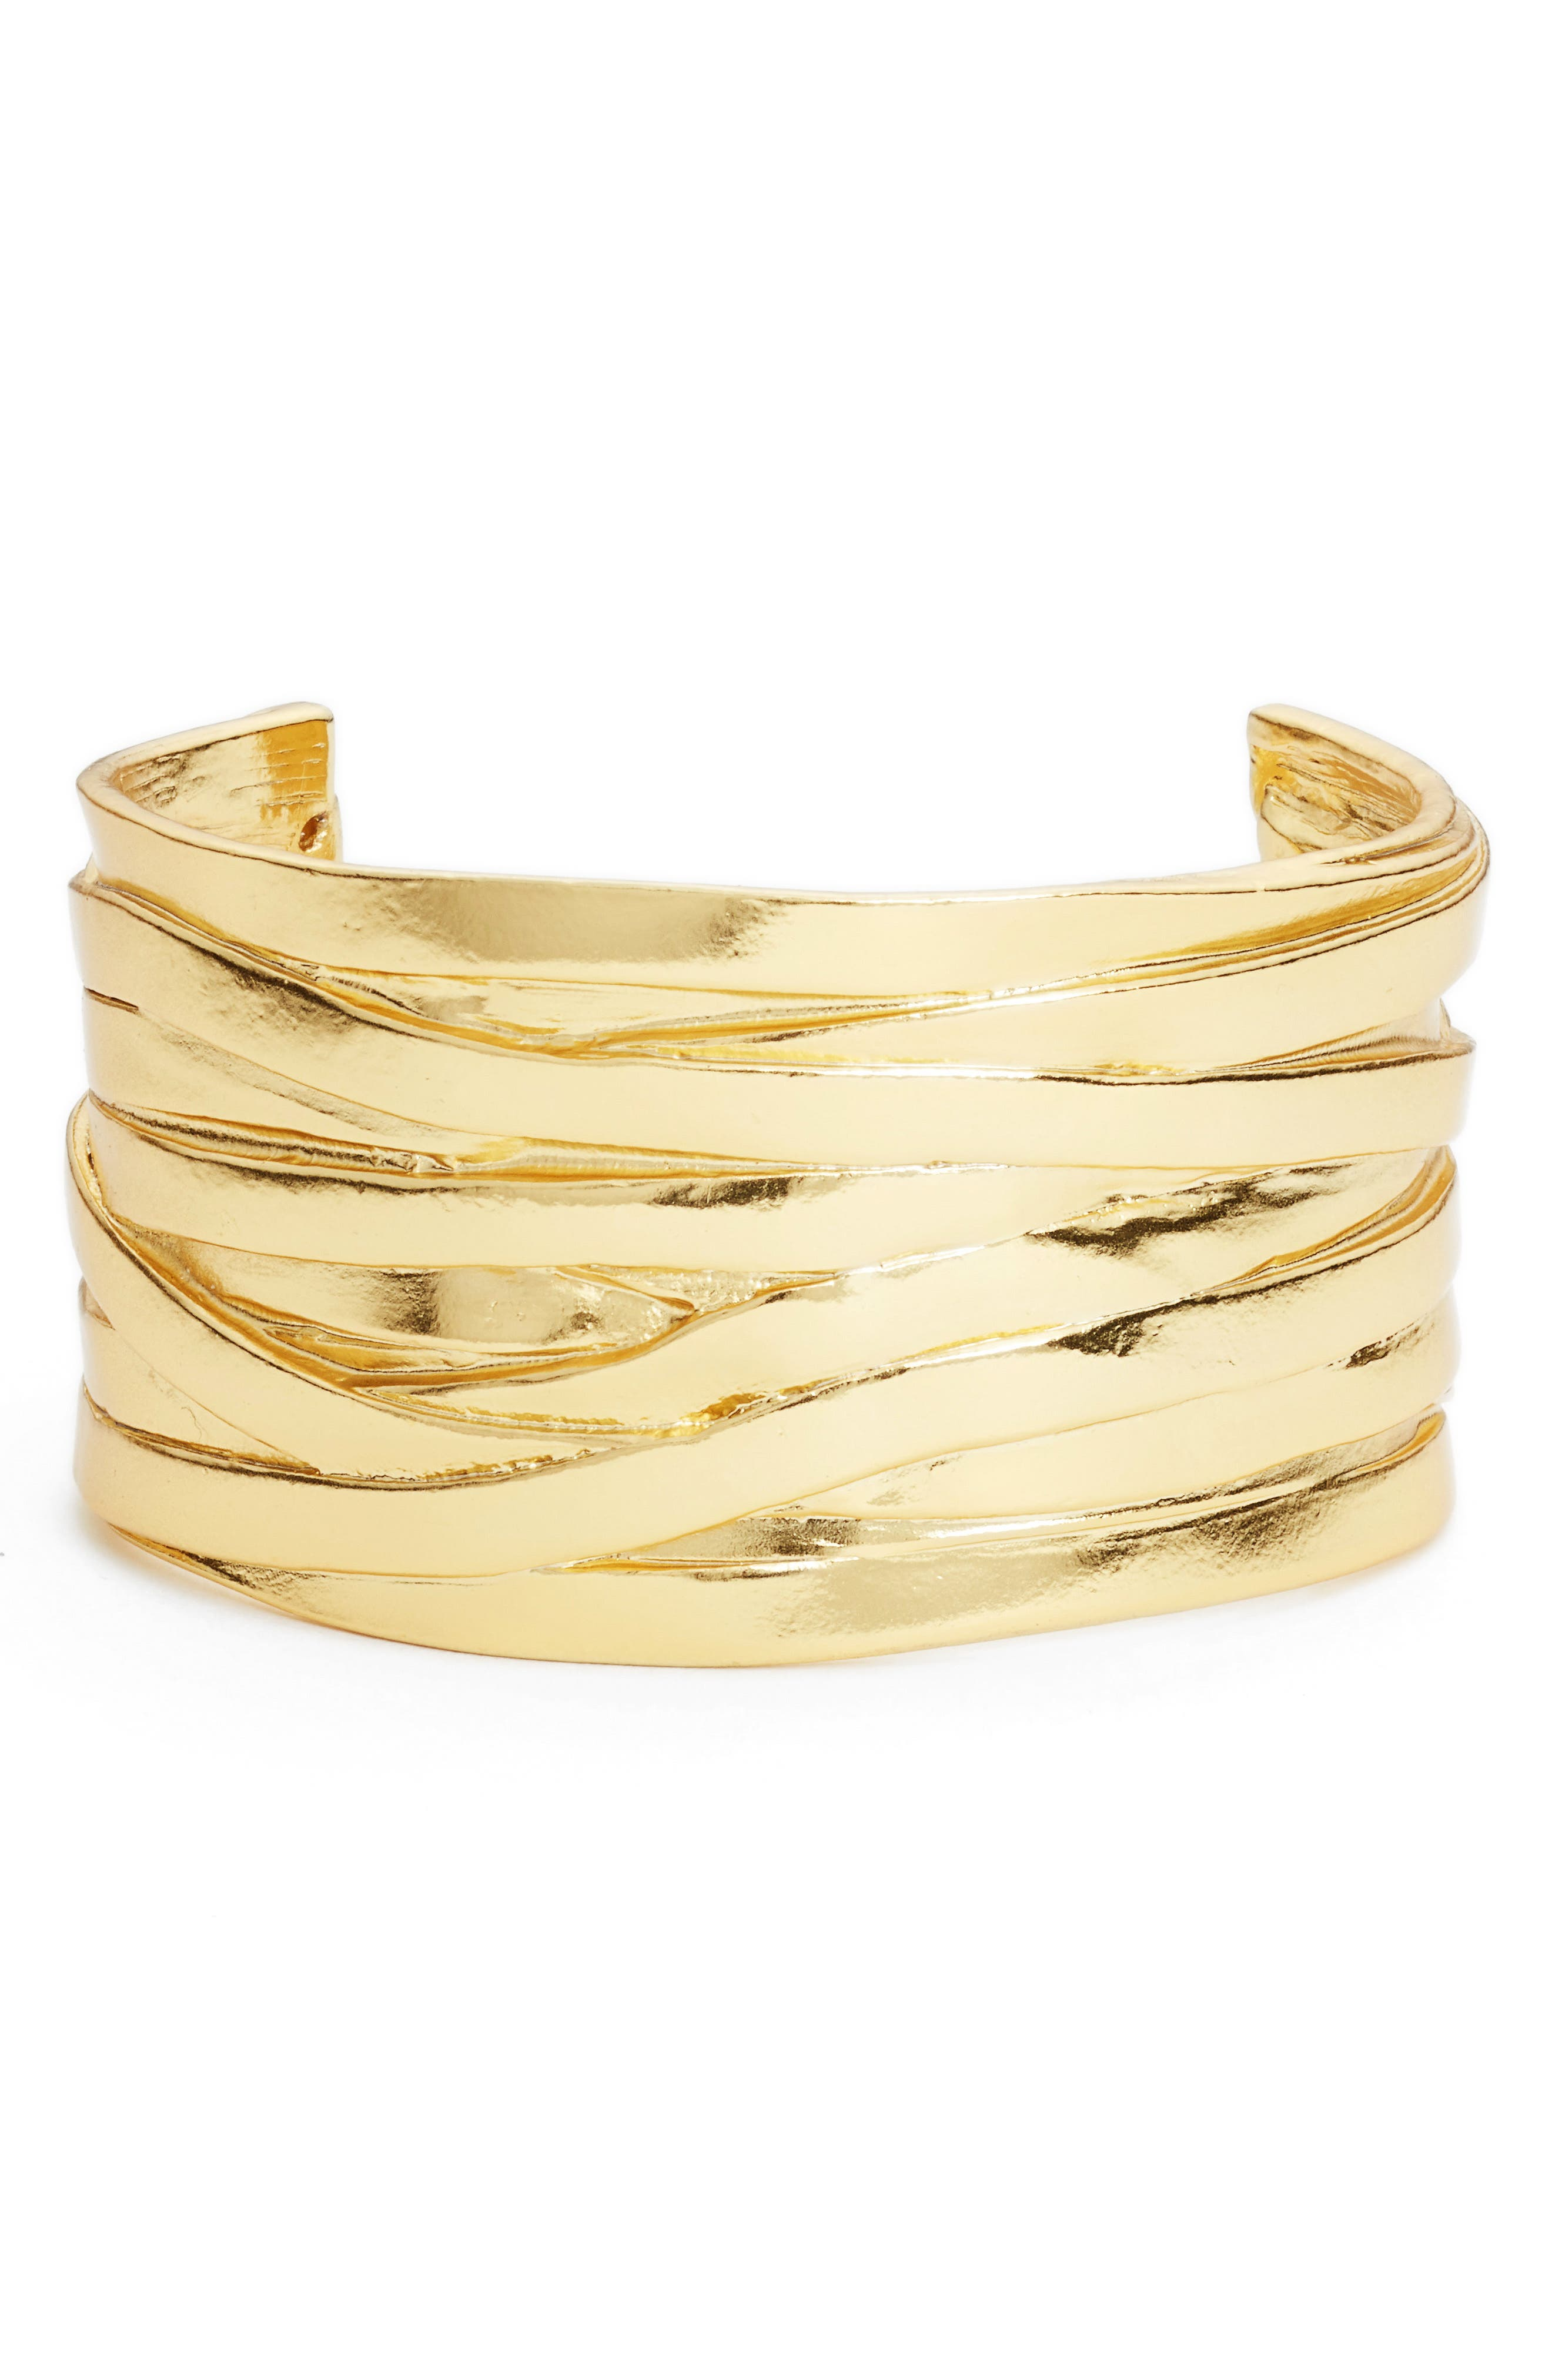 Alternate Image 1 Selected - Karine Sultan Angelique Wrist Cuff